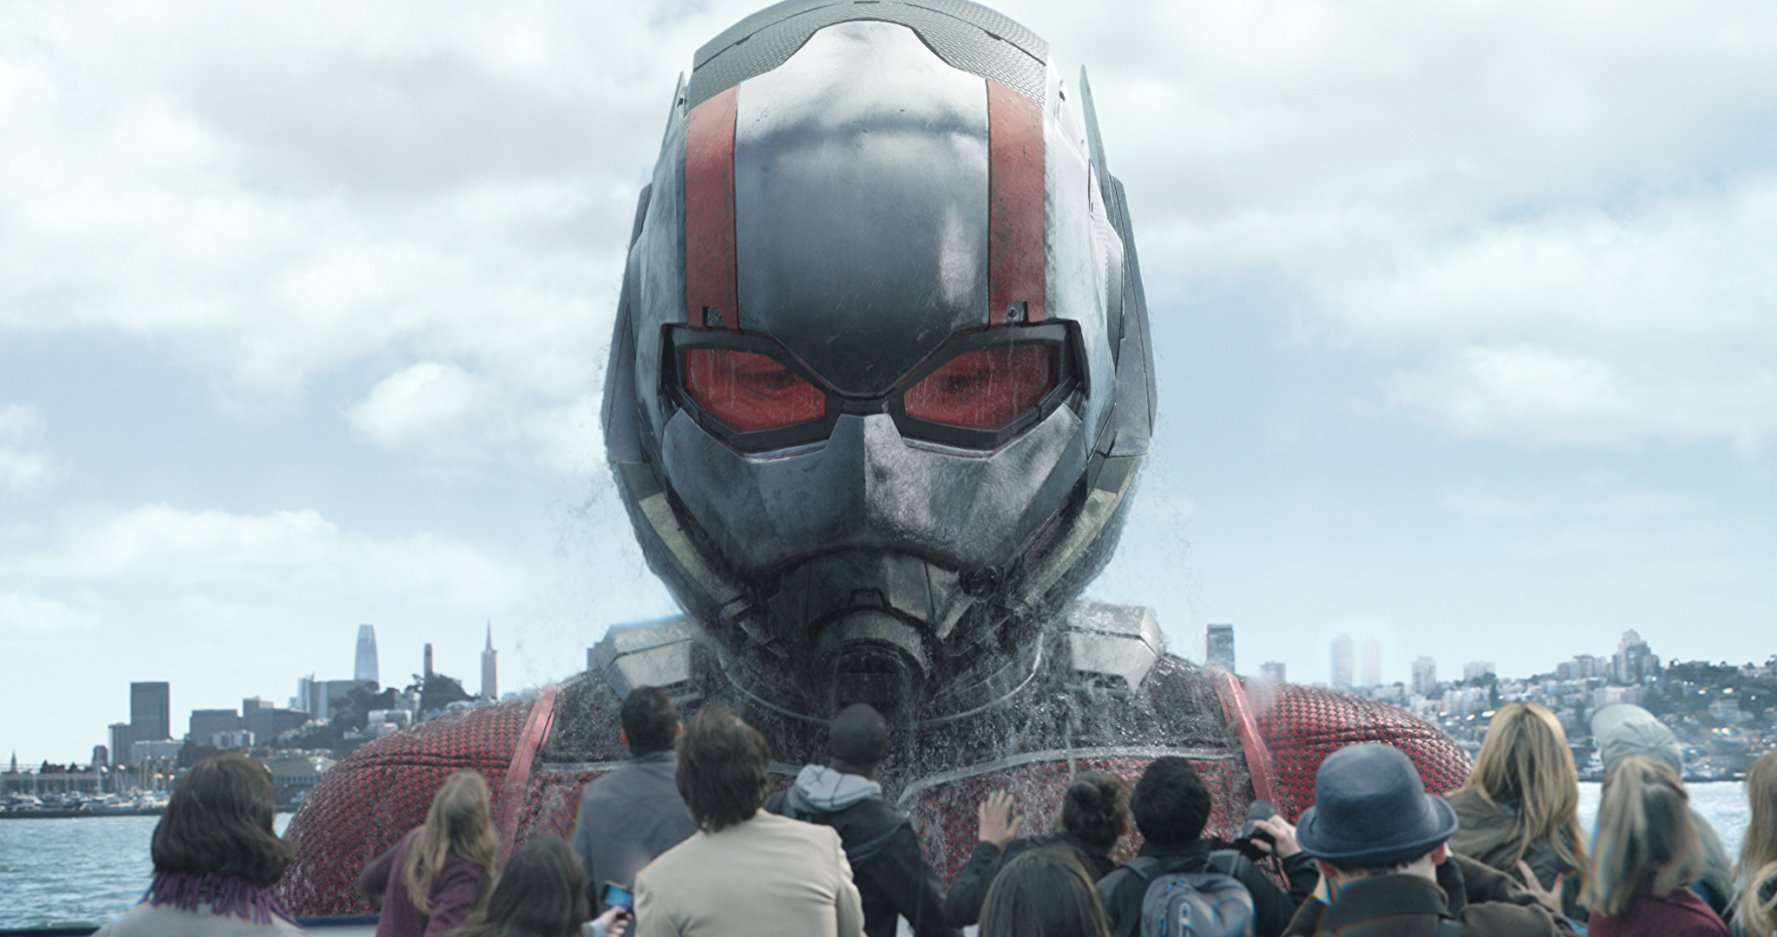 Ant-Man and the Wasp is Marvel's 20th Straight No. 1 Film